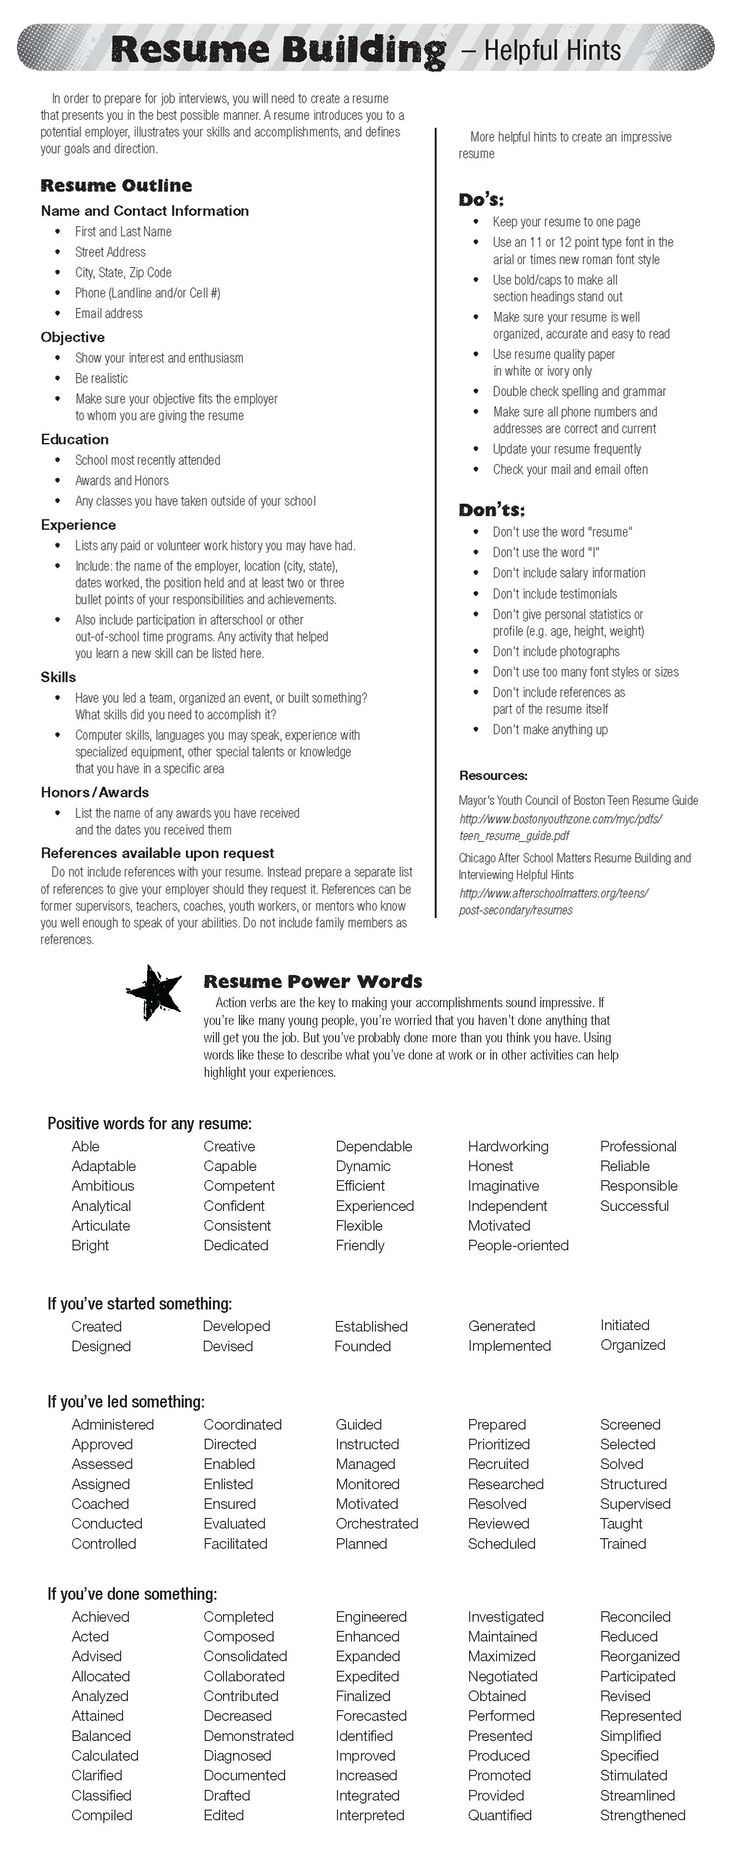 Opposenewapstandardsus  Nice  Ideas About Resume On Pinterest  Cv Format Resume Cv And  With Fascinating  Ideas About Resume On Pinterest  Cv Format Resume Cv And Resume Templates With Enchanting Product Manager Resume Also Make A Resume Free In Addition Design Resume And Chronological Resume Template As Well As Babysitting Resume Additionally Free Downloadable Resume Templates From Pinterestcom With Opposenewapstandardsus  Fascinating  Ideas About Resume On Pinterest  Cv Format Resume Cv And  With Enchanting  Ideas About Resume On Pinterest  Cv Format Resume Cv And Resume Templates And Nice Product Manager Resume Also Make A Resume Free In Addition Design Resume From Pinterestcom